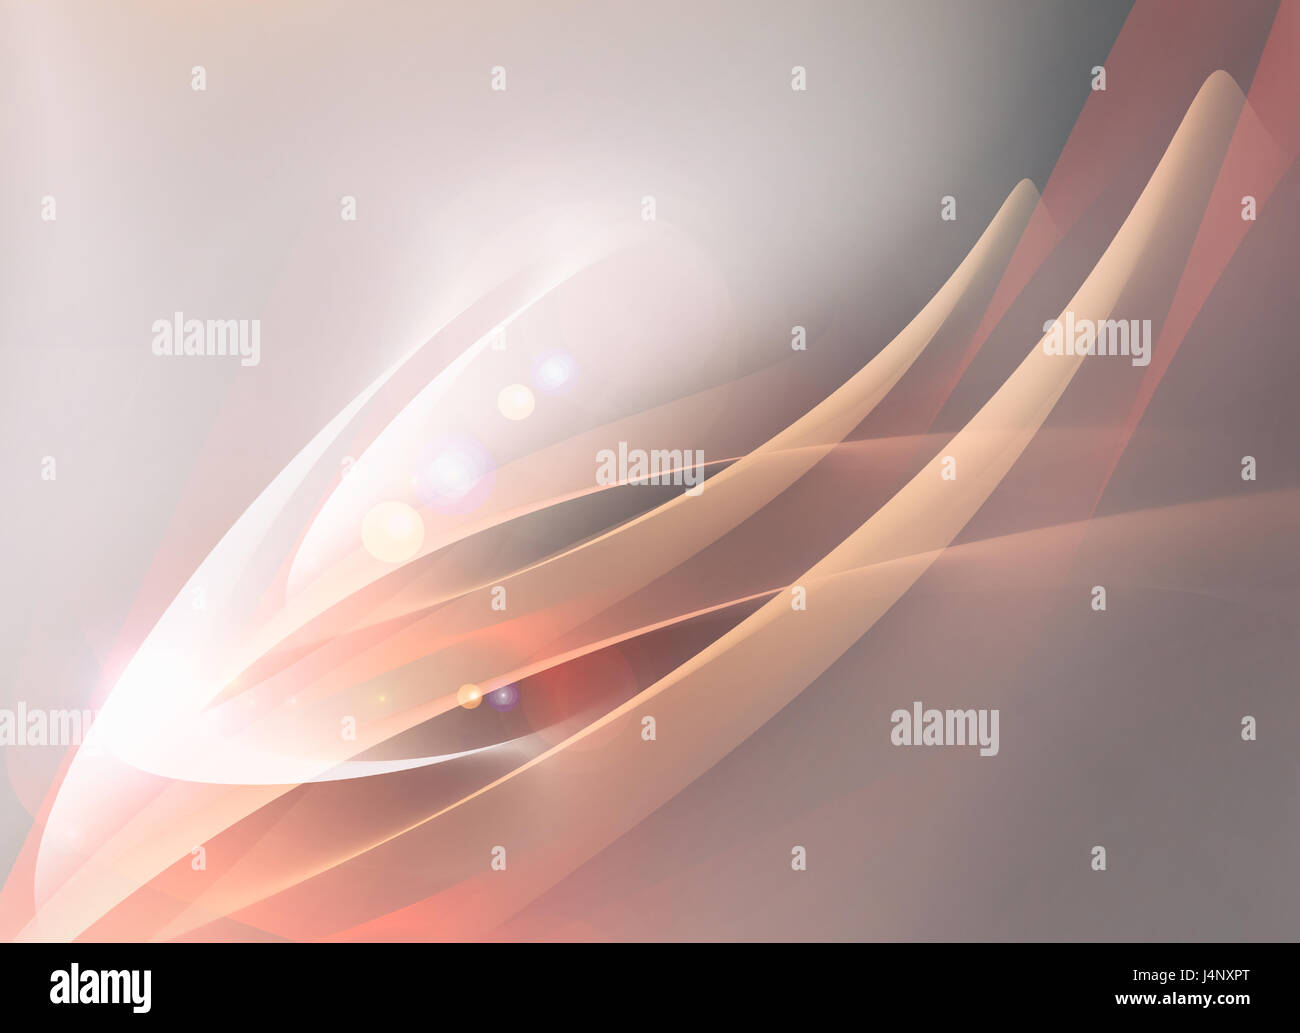 Minimalistic soft background with waves and soft light - Stock Image